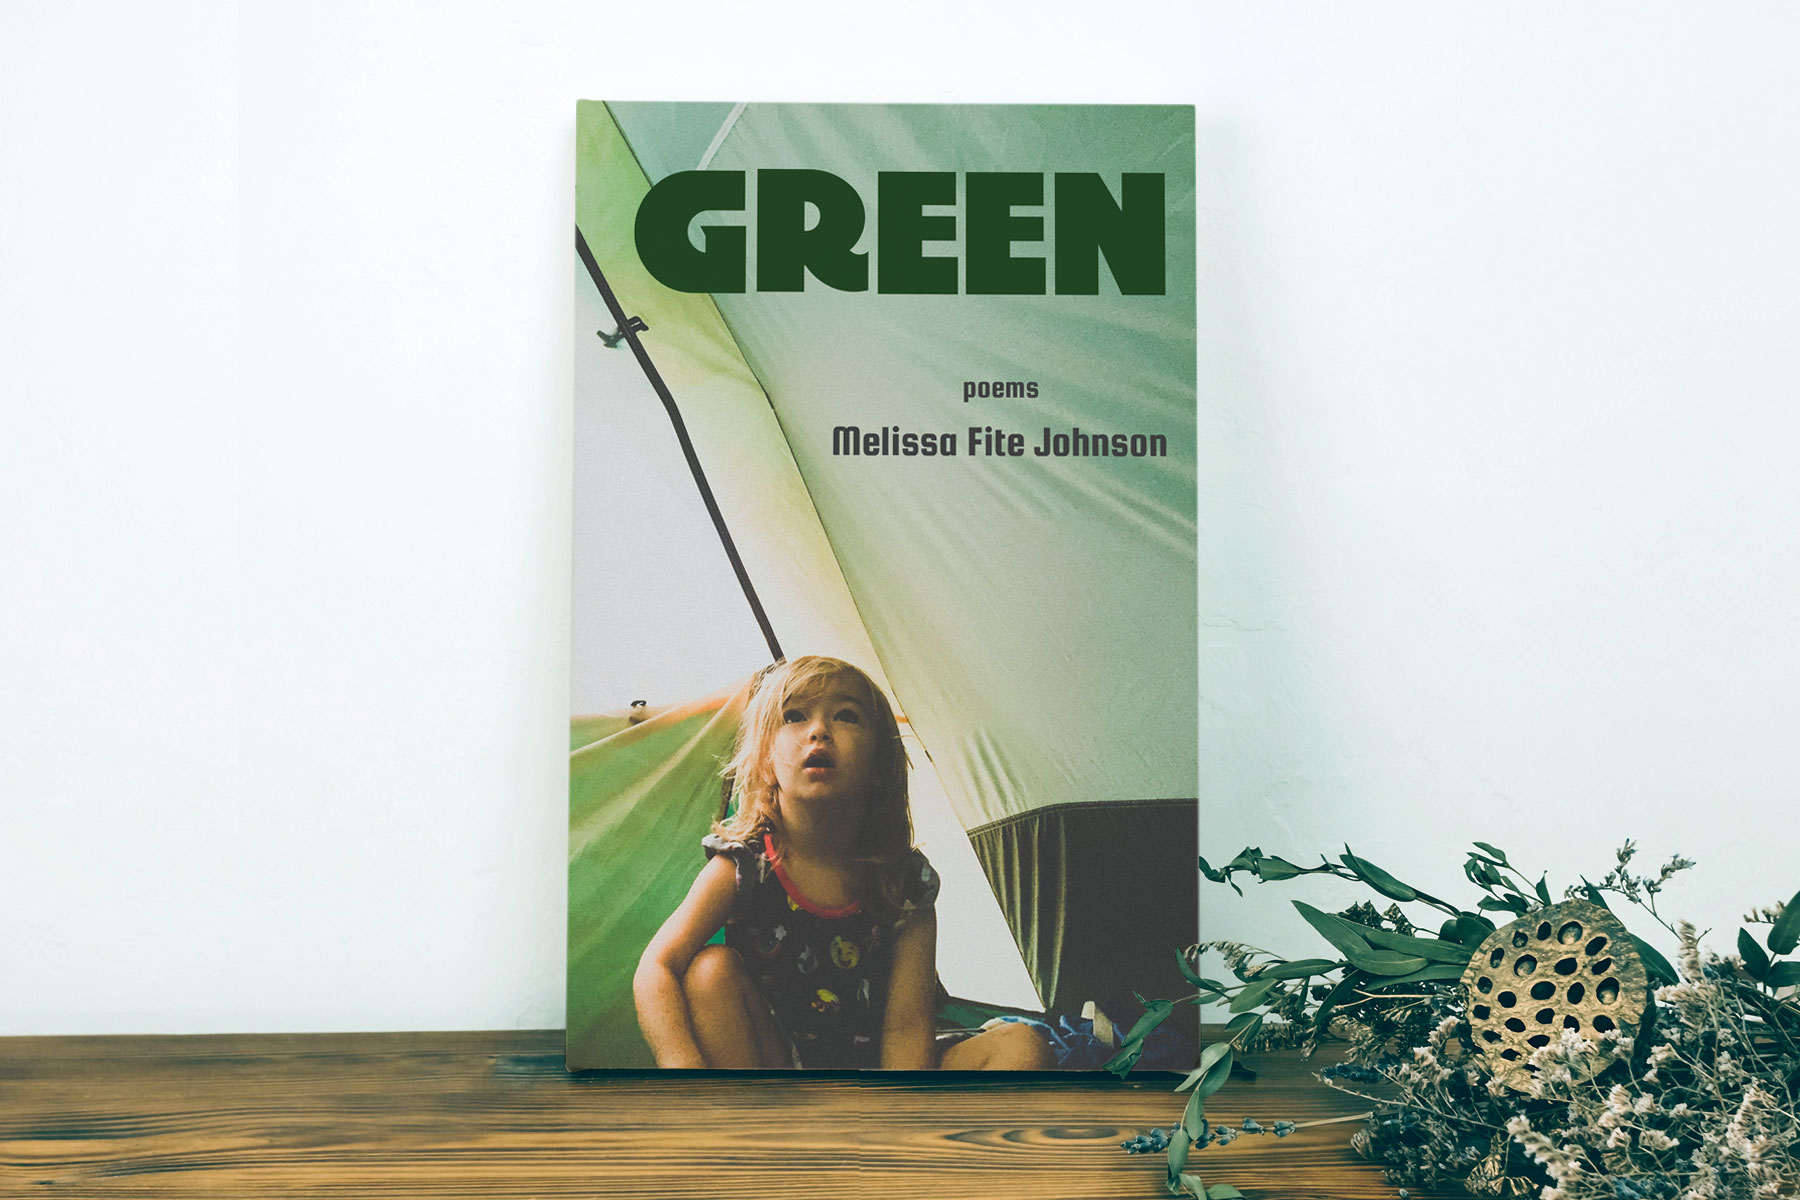 Green by Melissa Fite Johnson